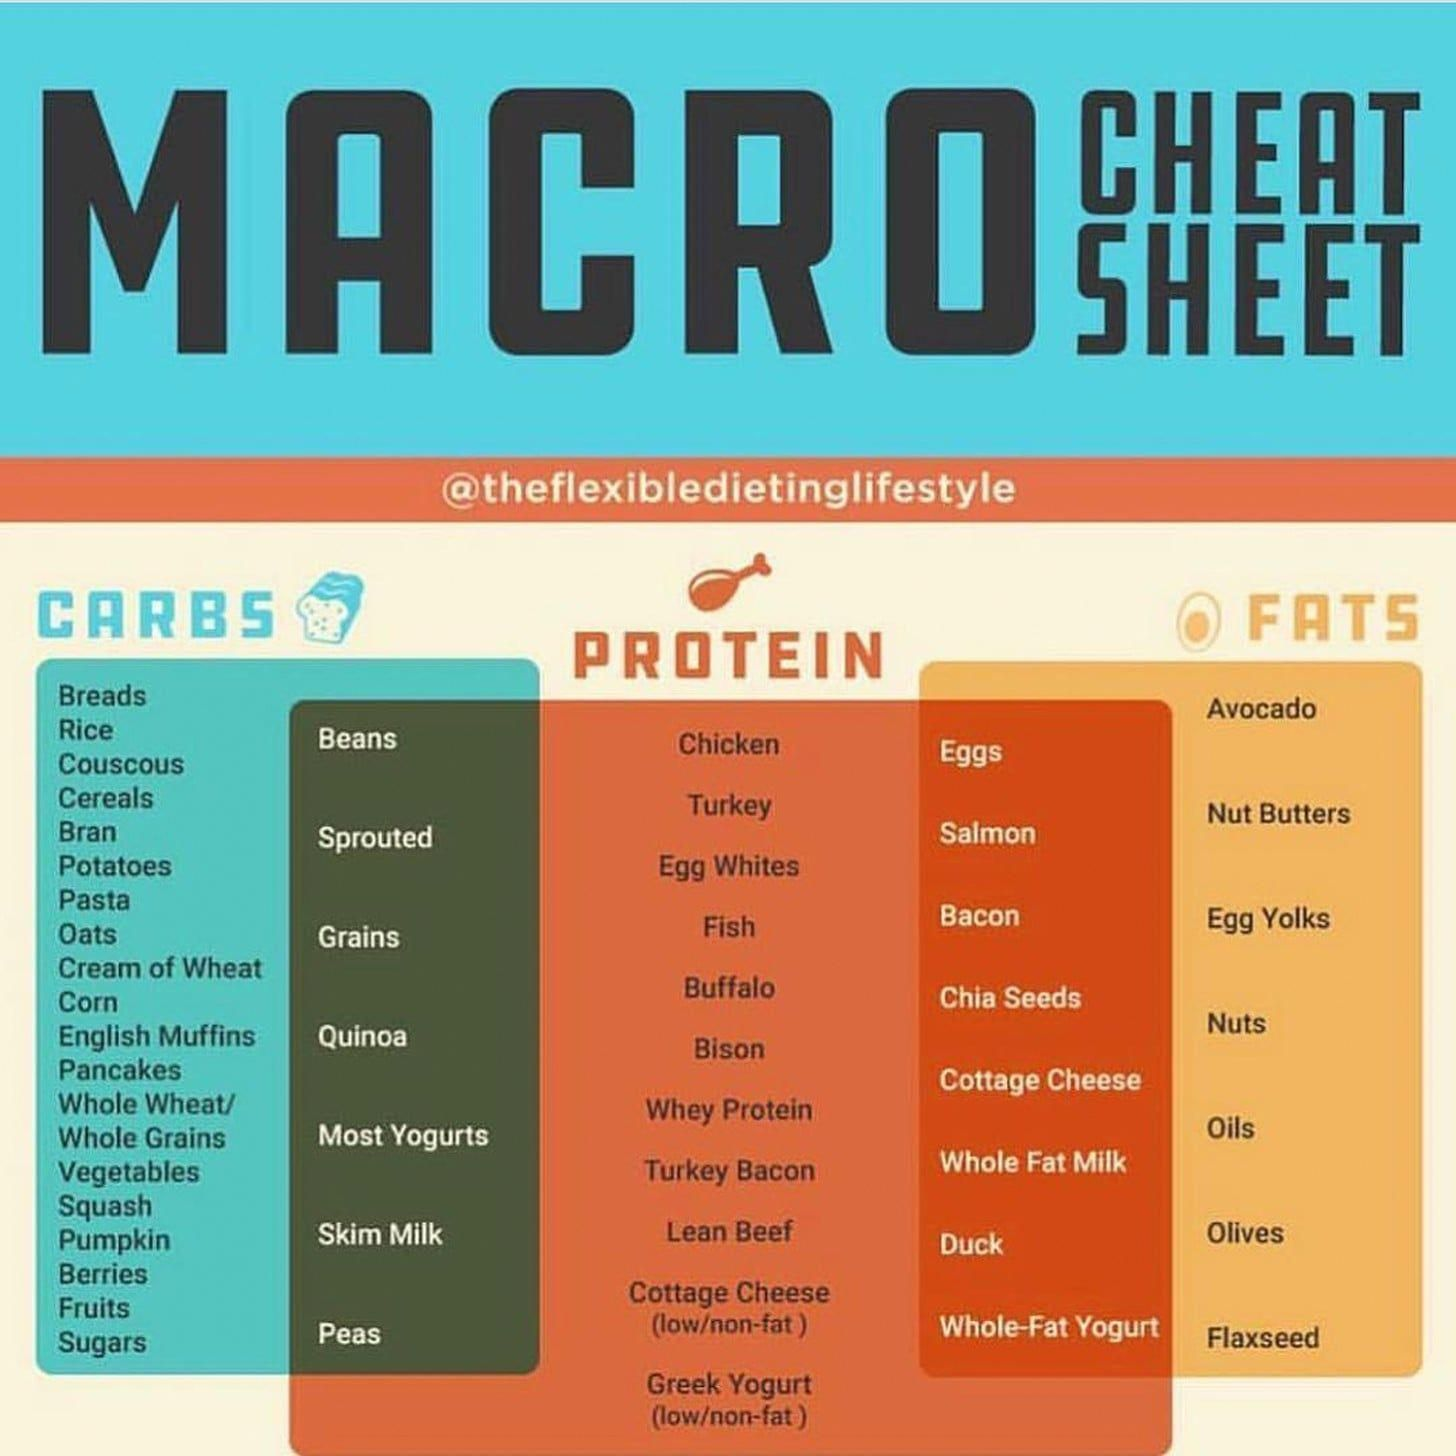 Simple macro cheat sheet for counting up your macros. #Nutritionalhealthcoach